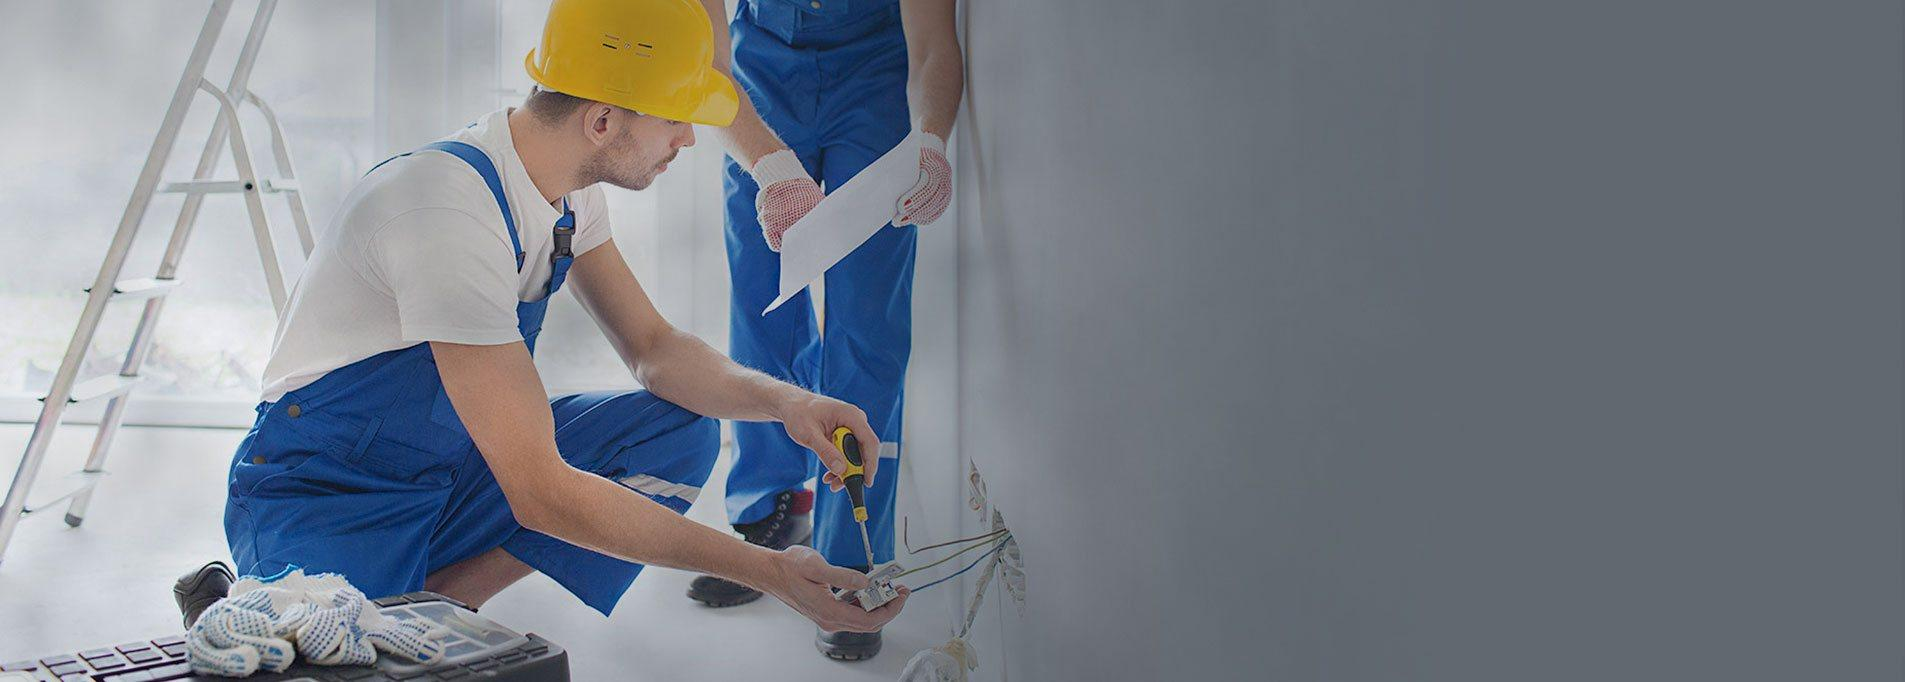 Daylight Electrician Singapore 1 Recommended Electrical